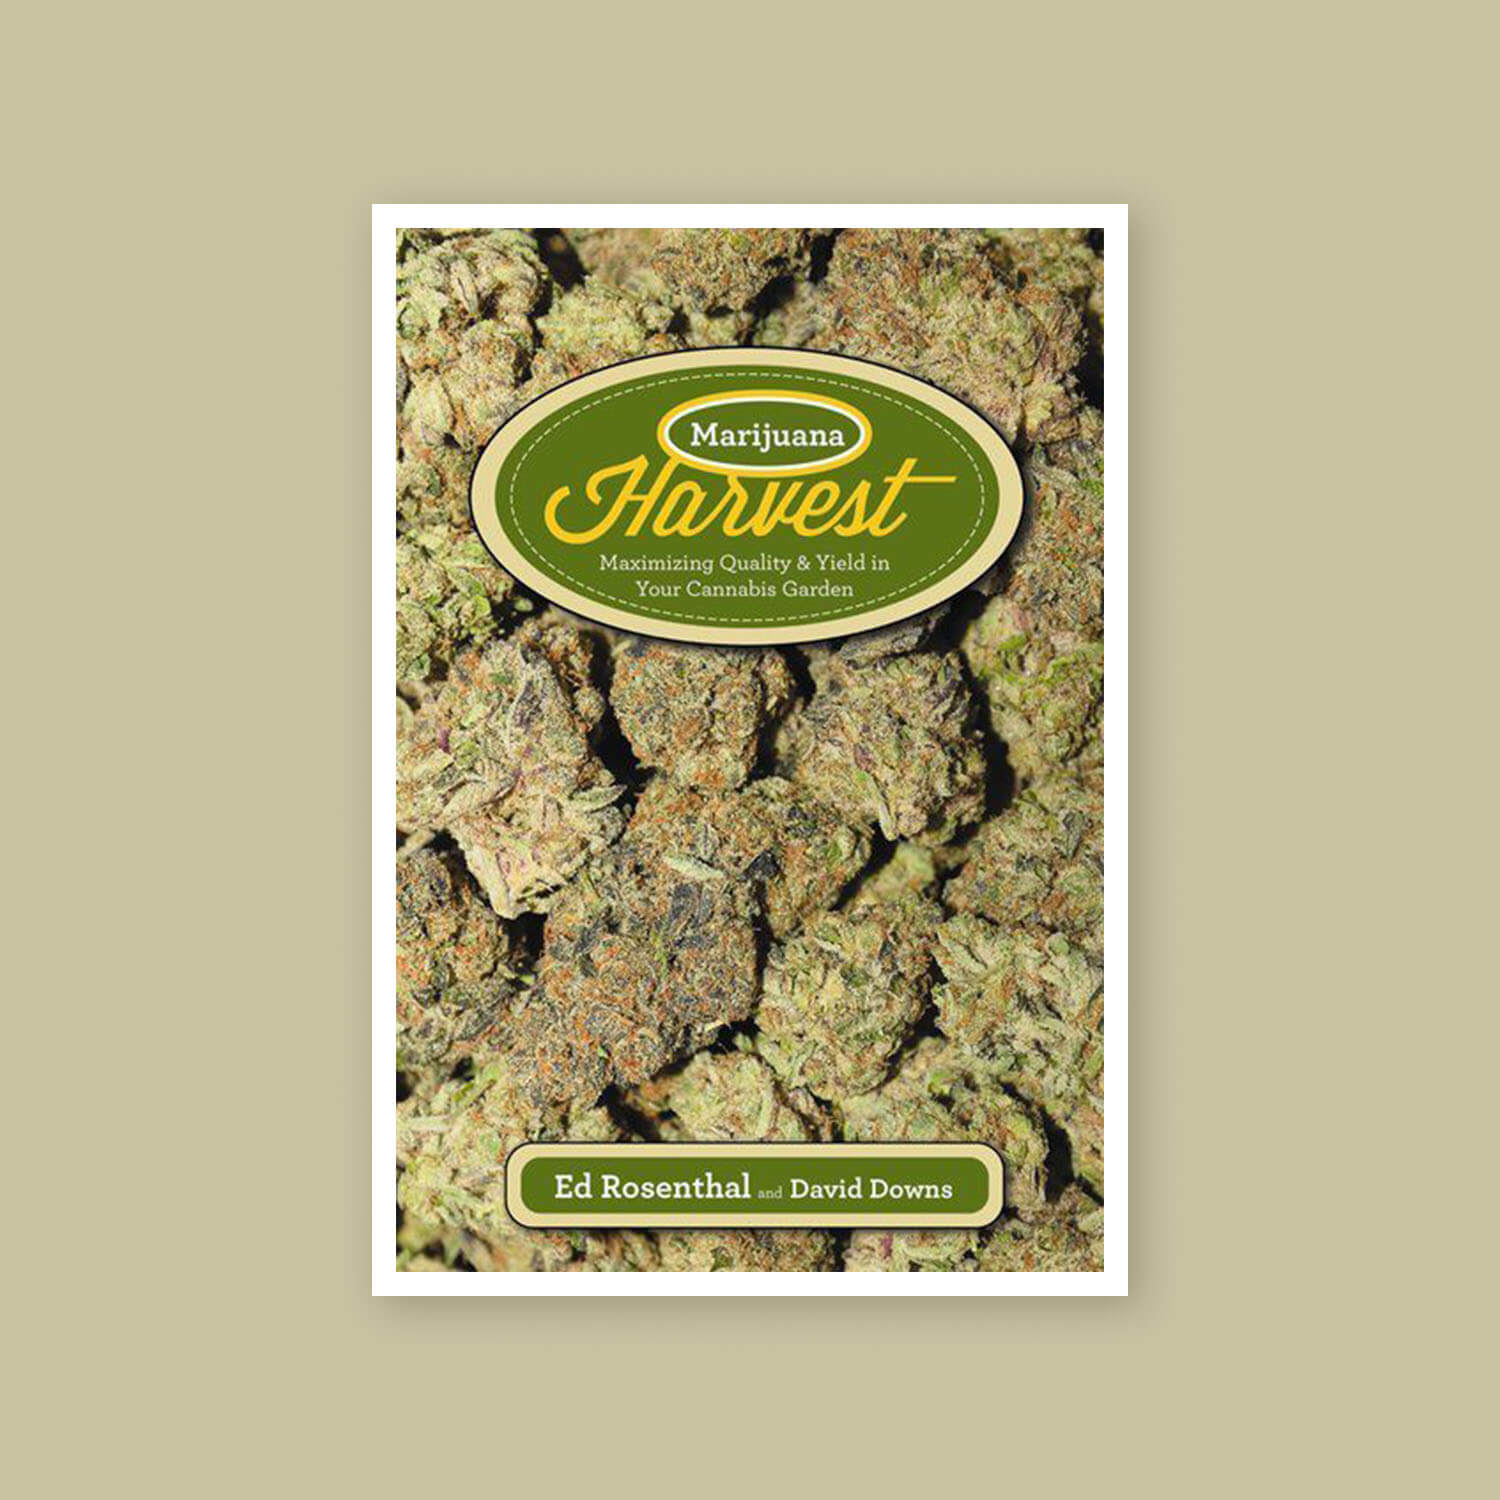 Marijuana harvest - Goldleaf bookshelf